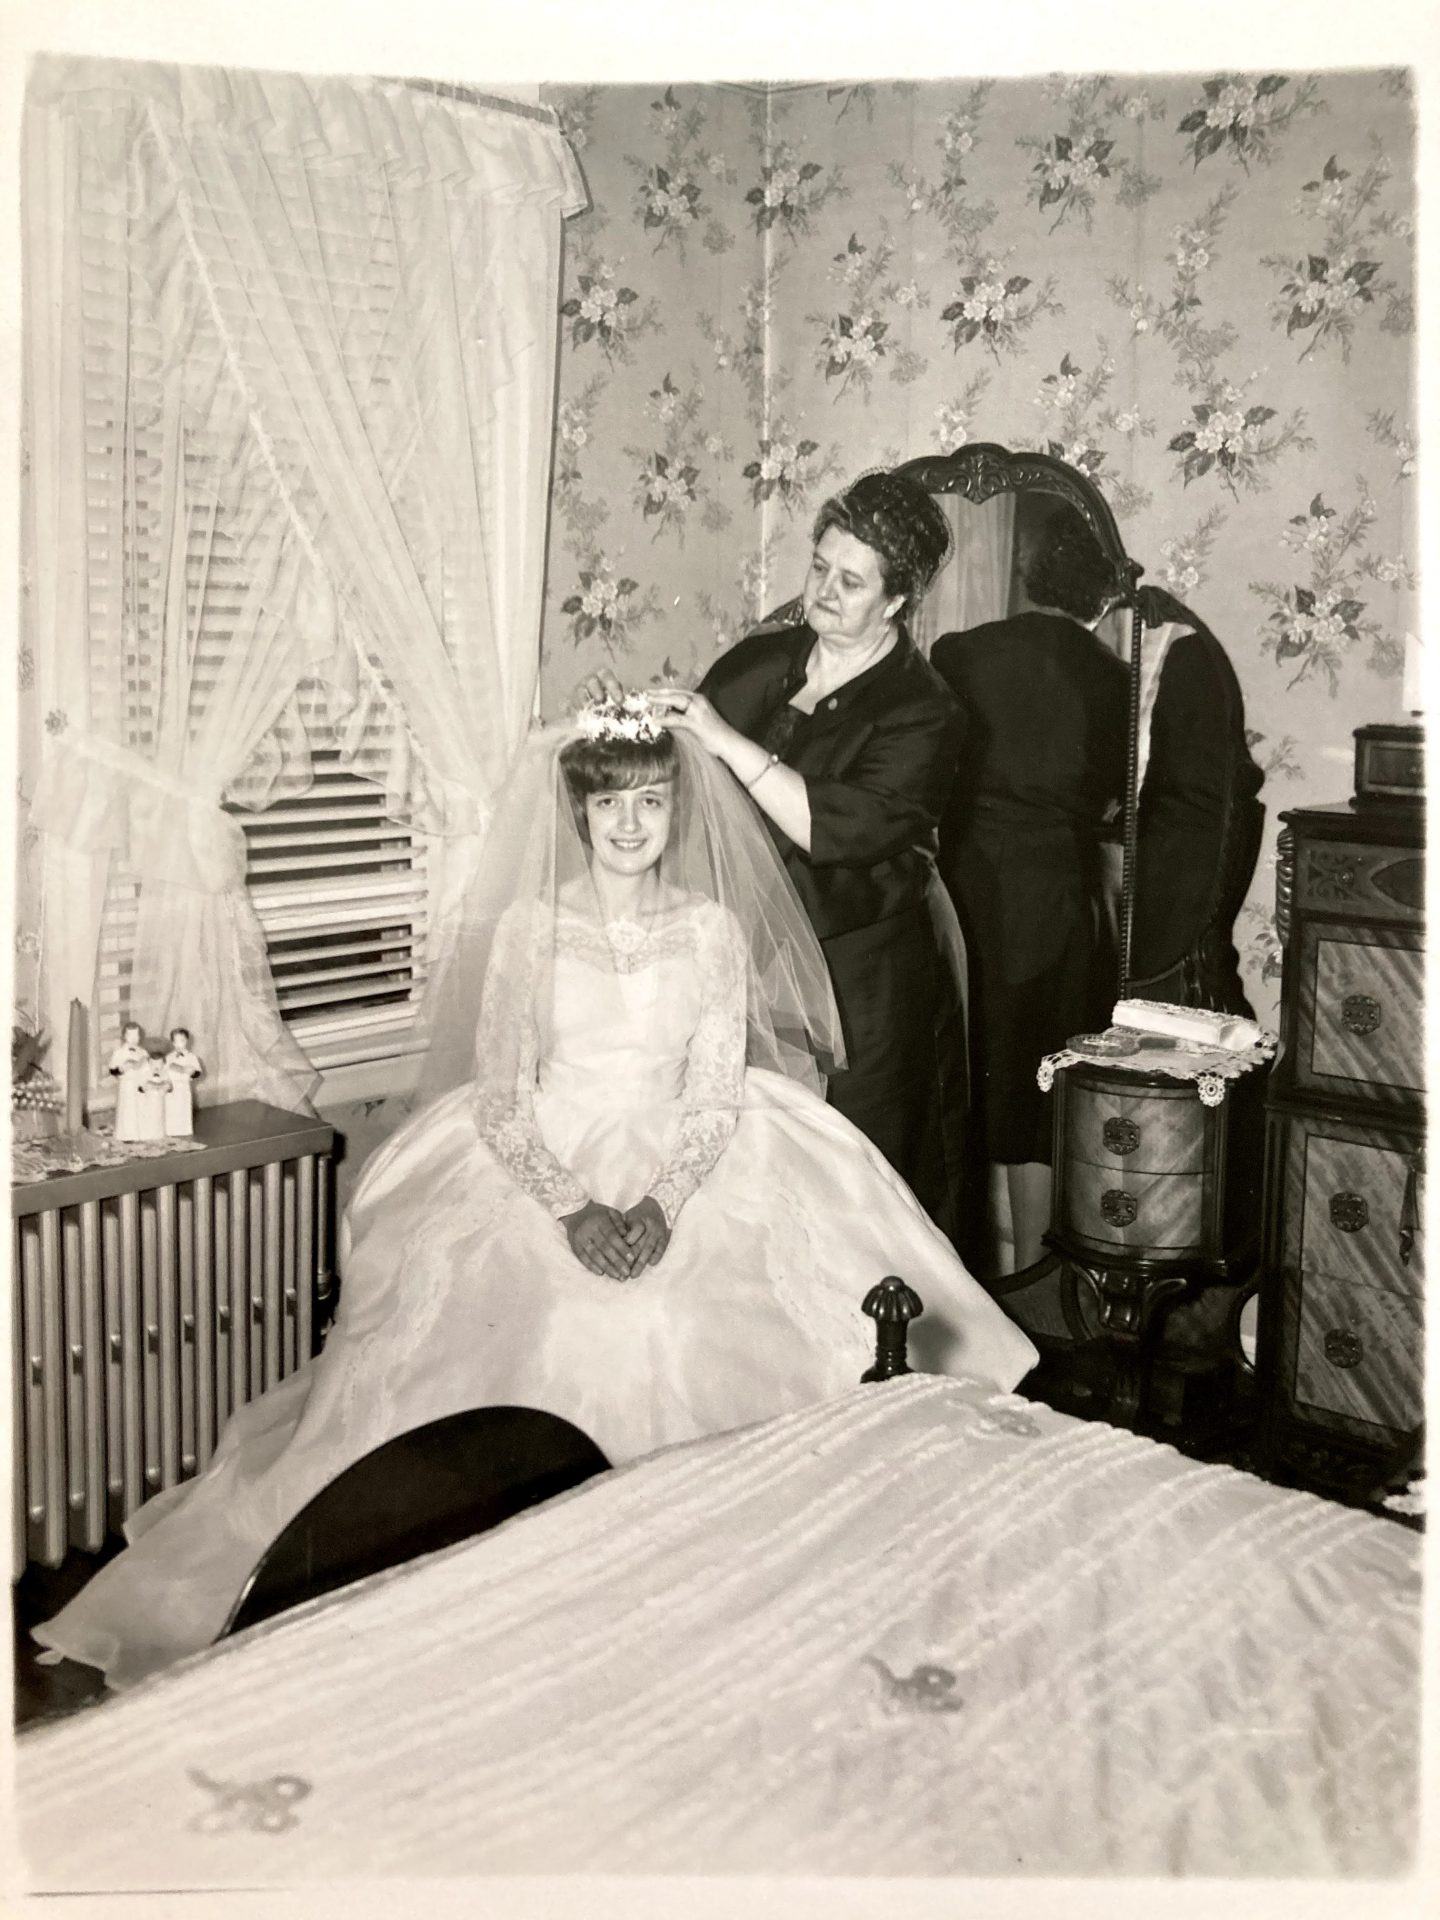 Charlotte and her mother, Helen Karolczak, on her wedding day.